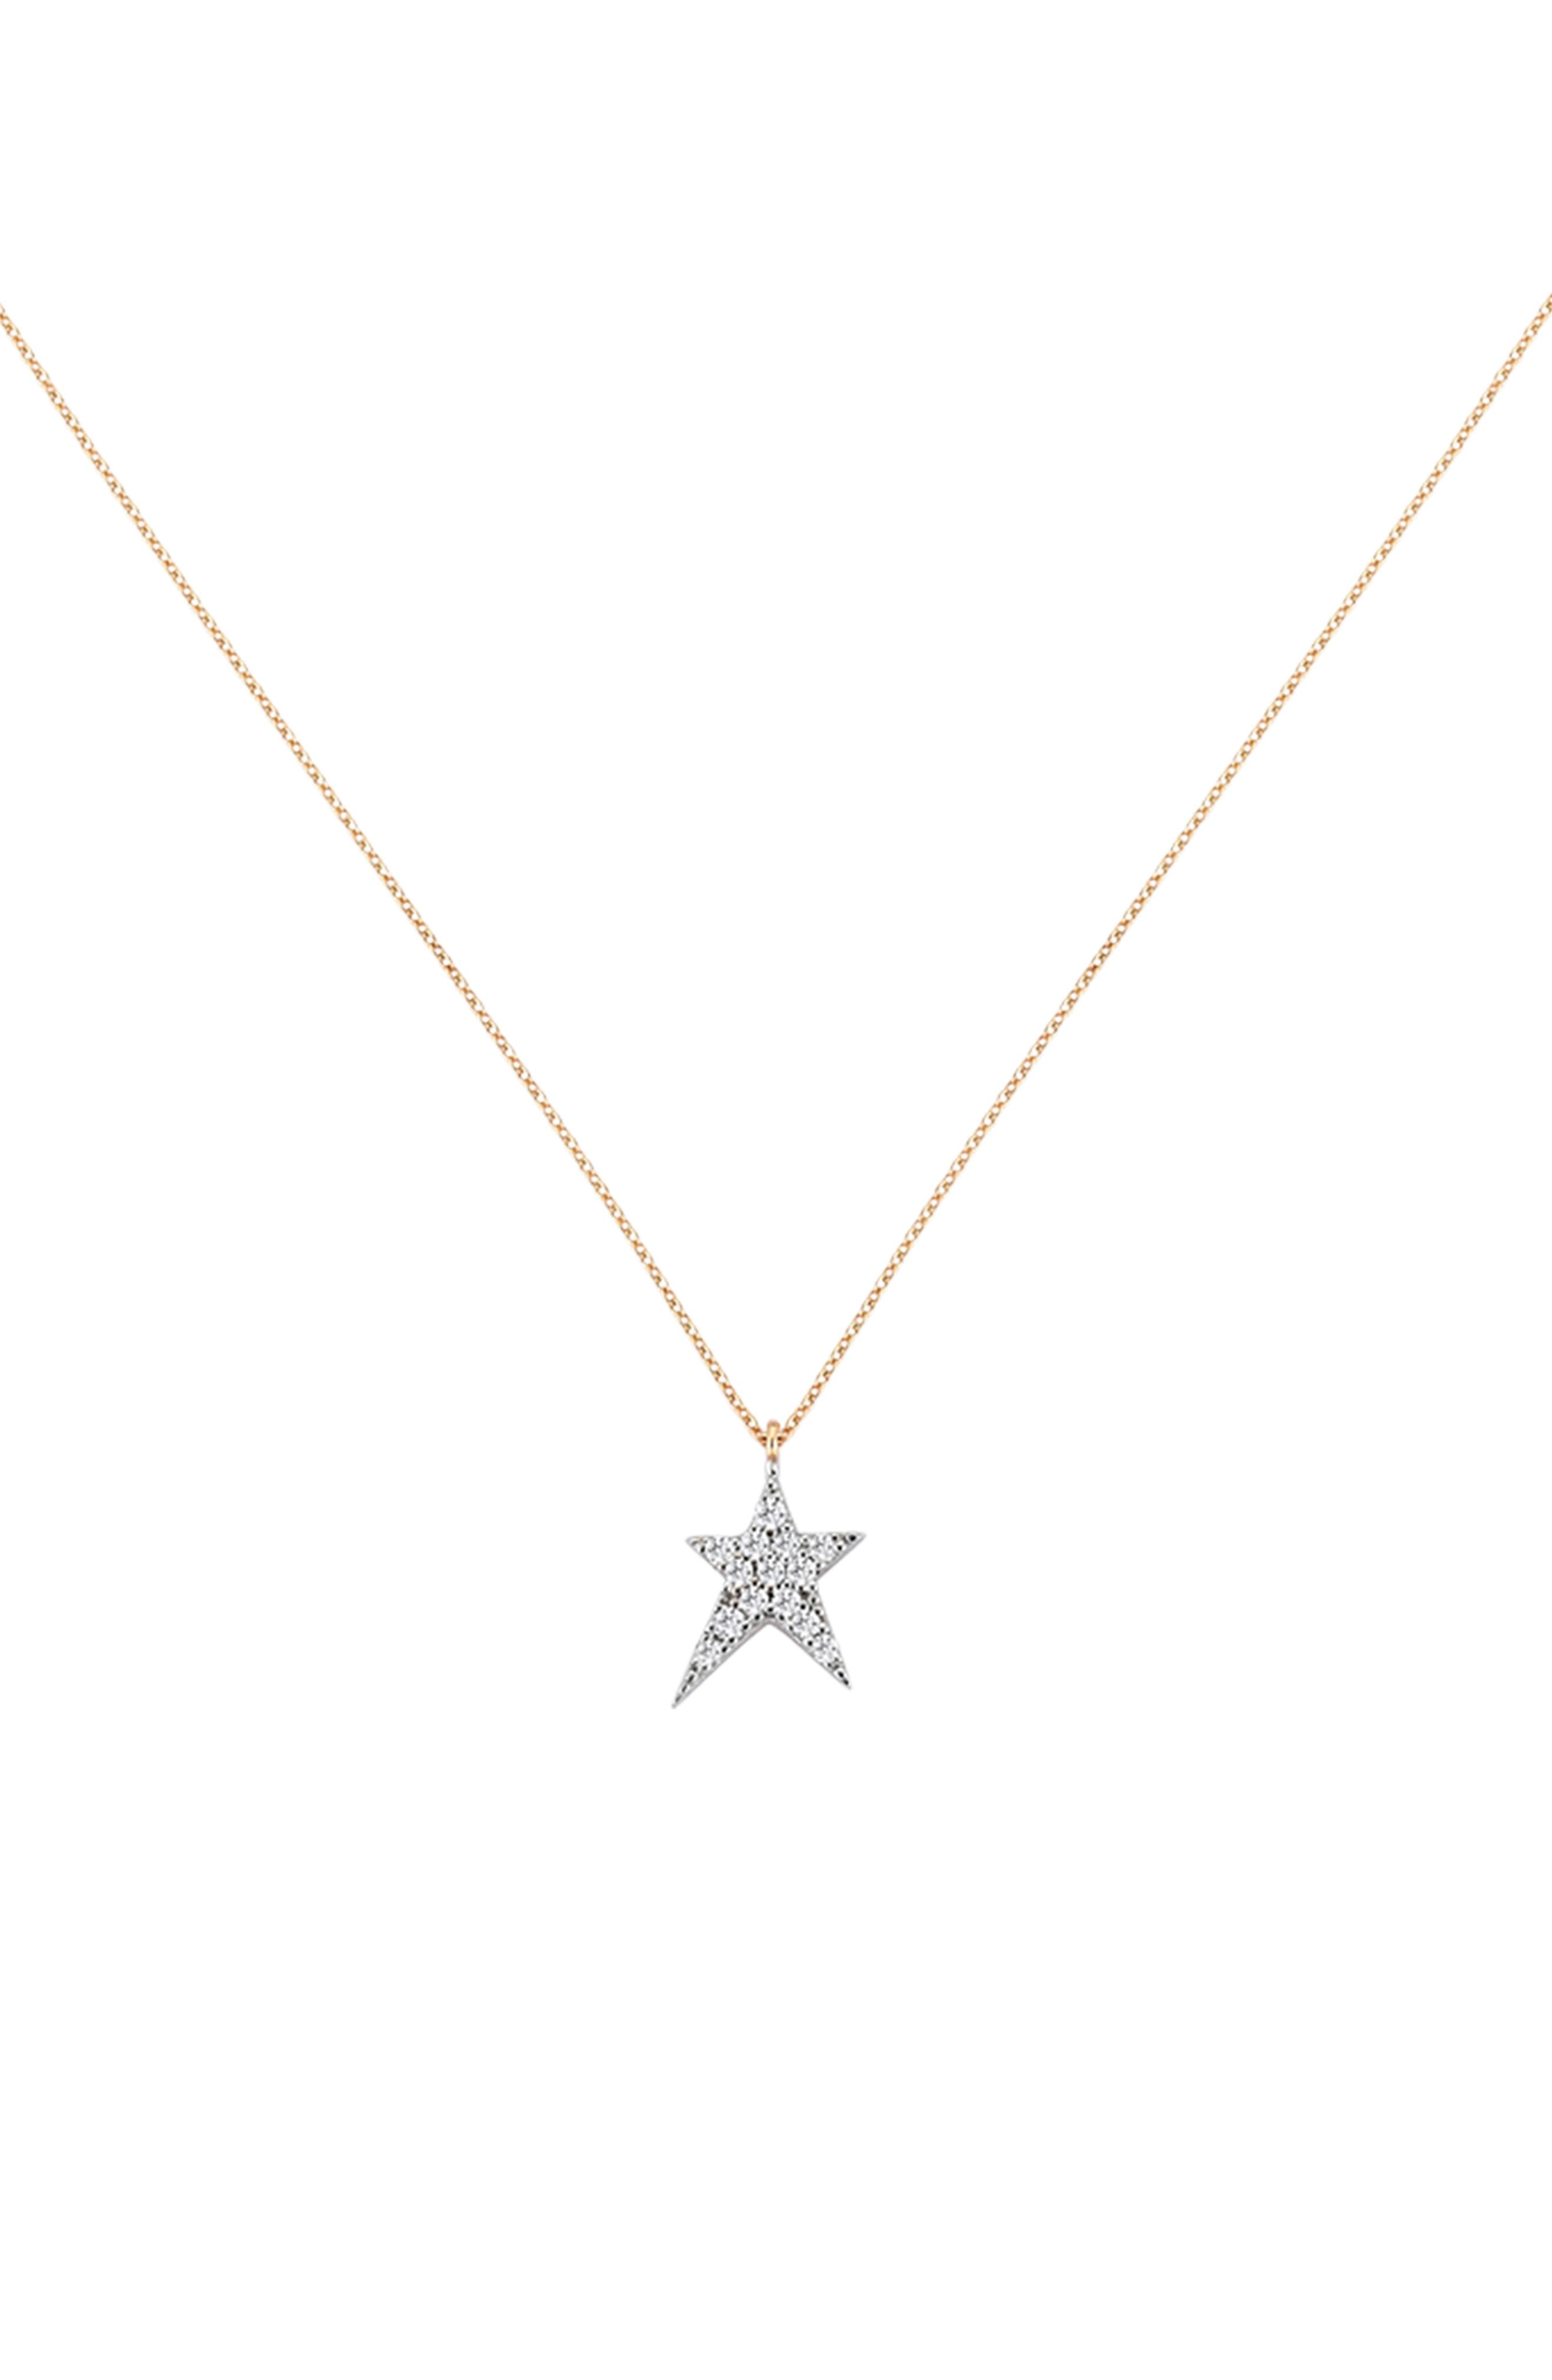 Struck Star Diamond Necklace,                             Main thumbnail 1, color,                             ROSE GOLD